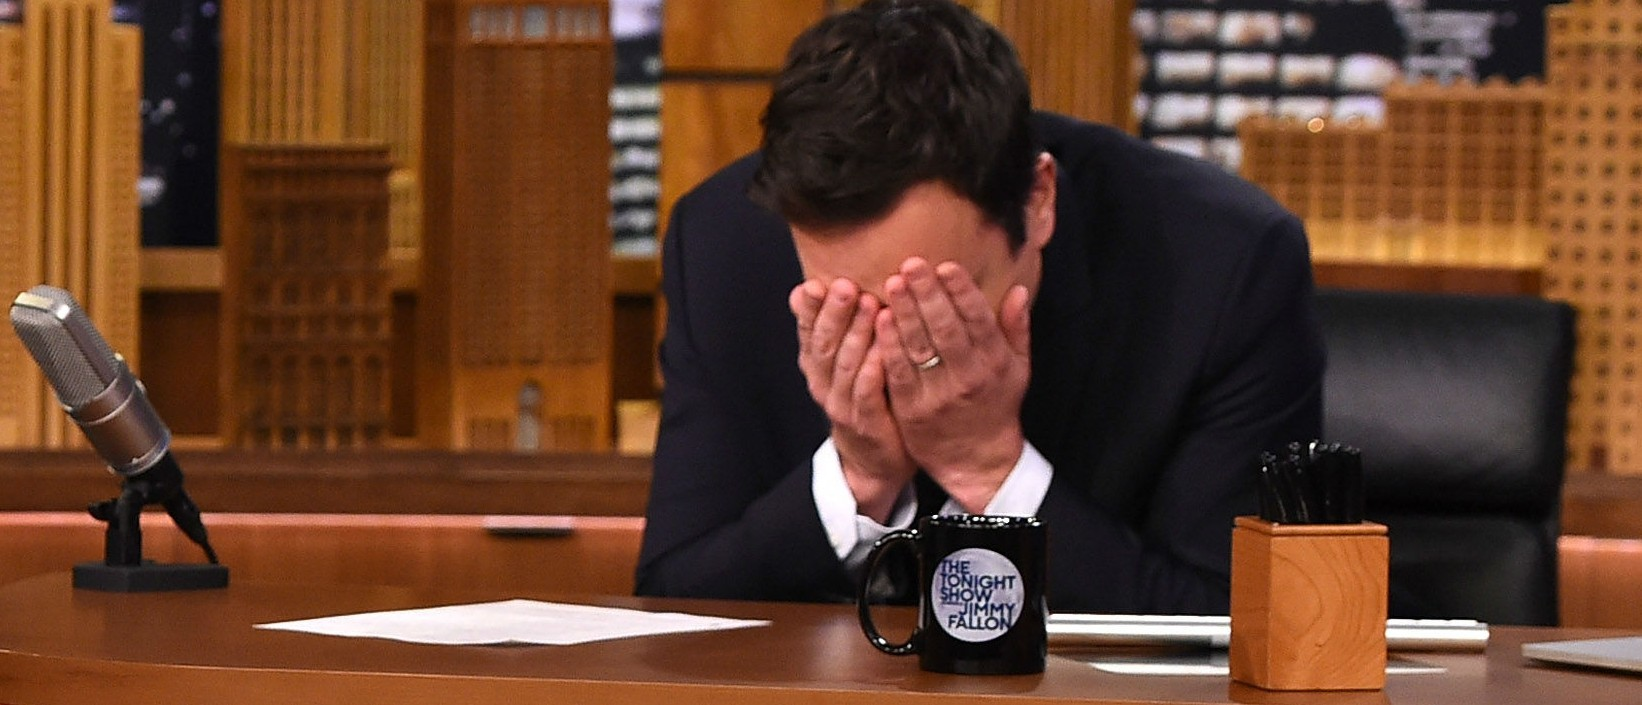 Jimmy Fallon has a drinking problem? (Photo: Getty Images)